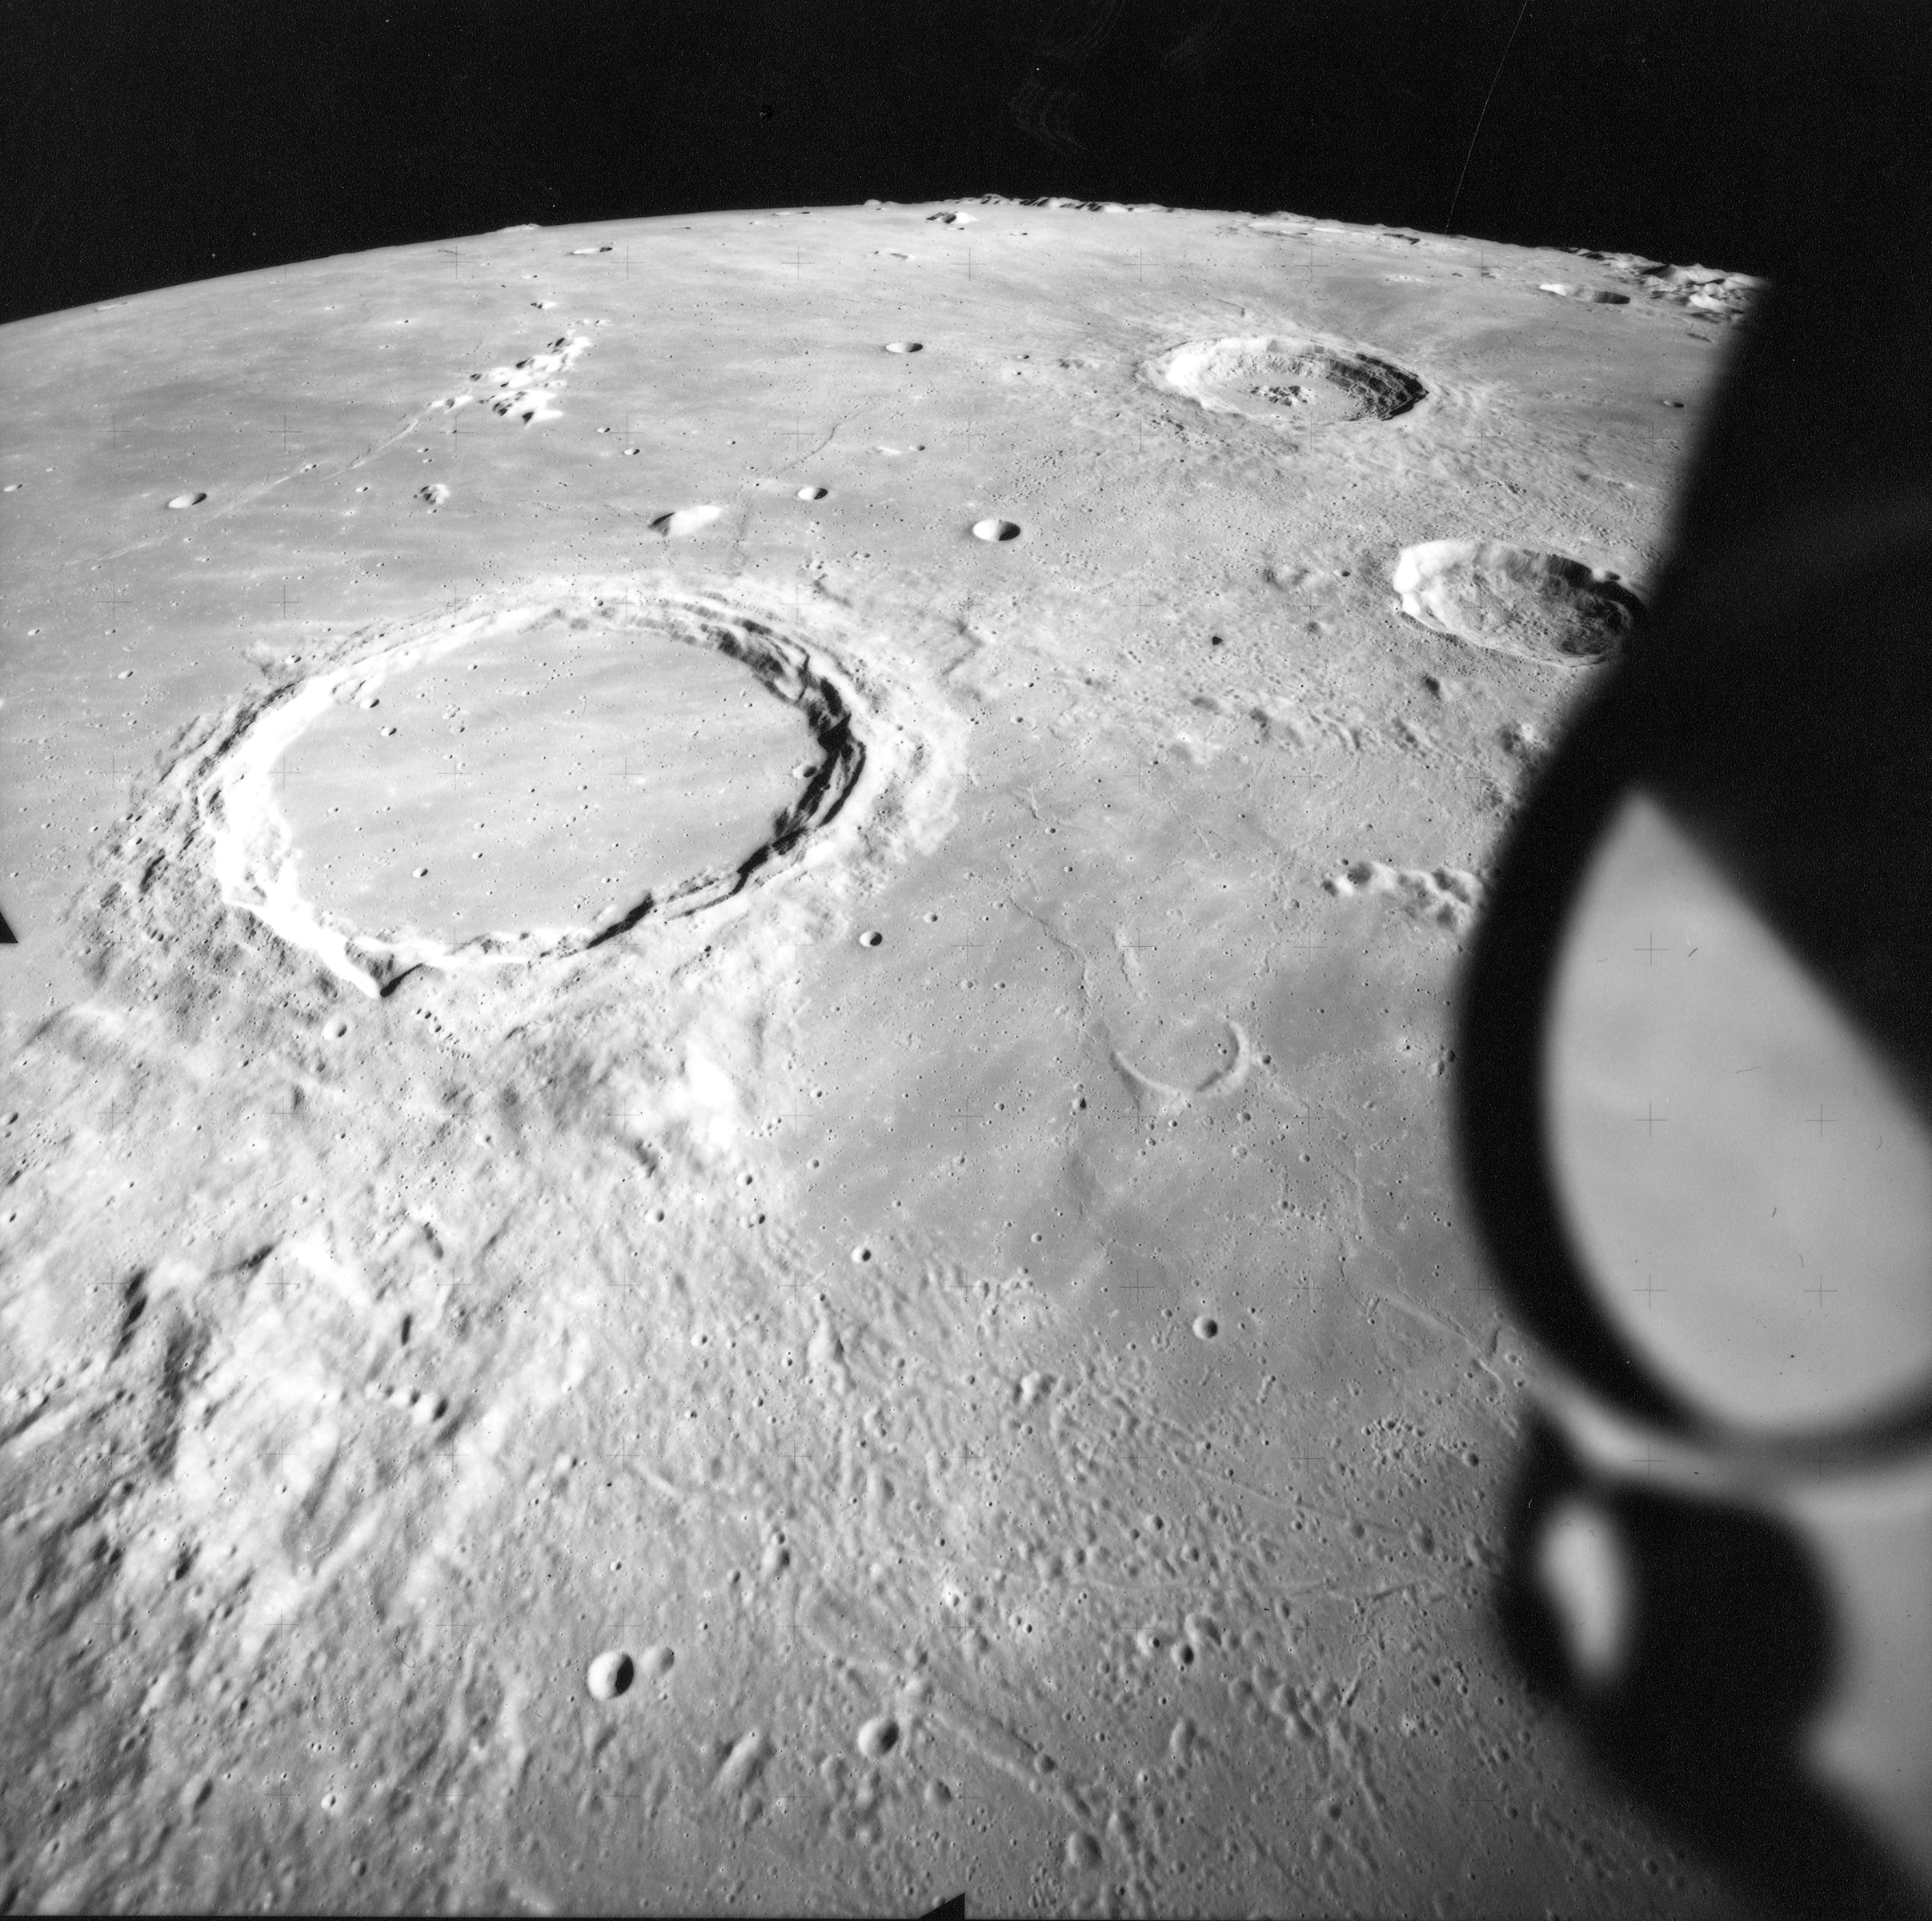 Hold-Apollo15-AS15-M-1541